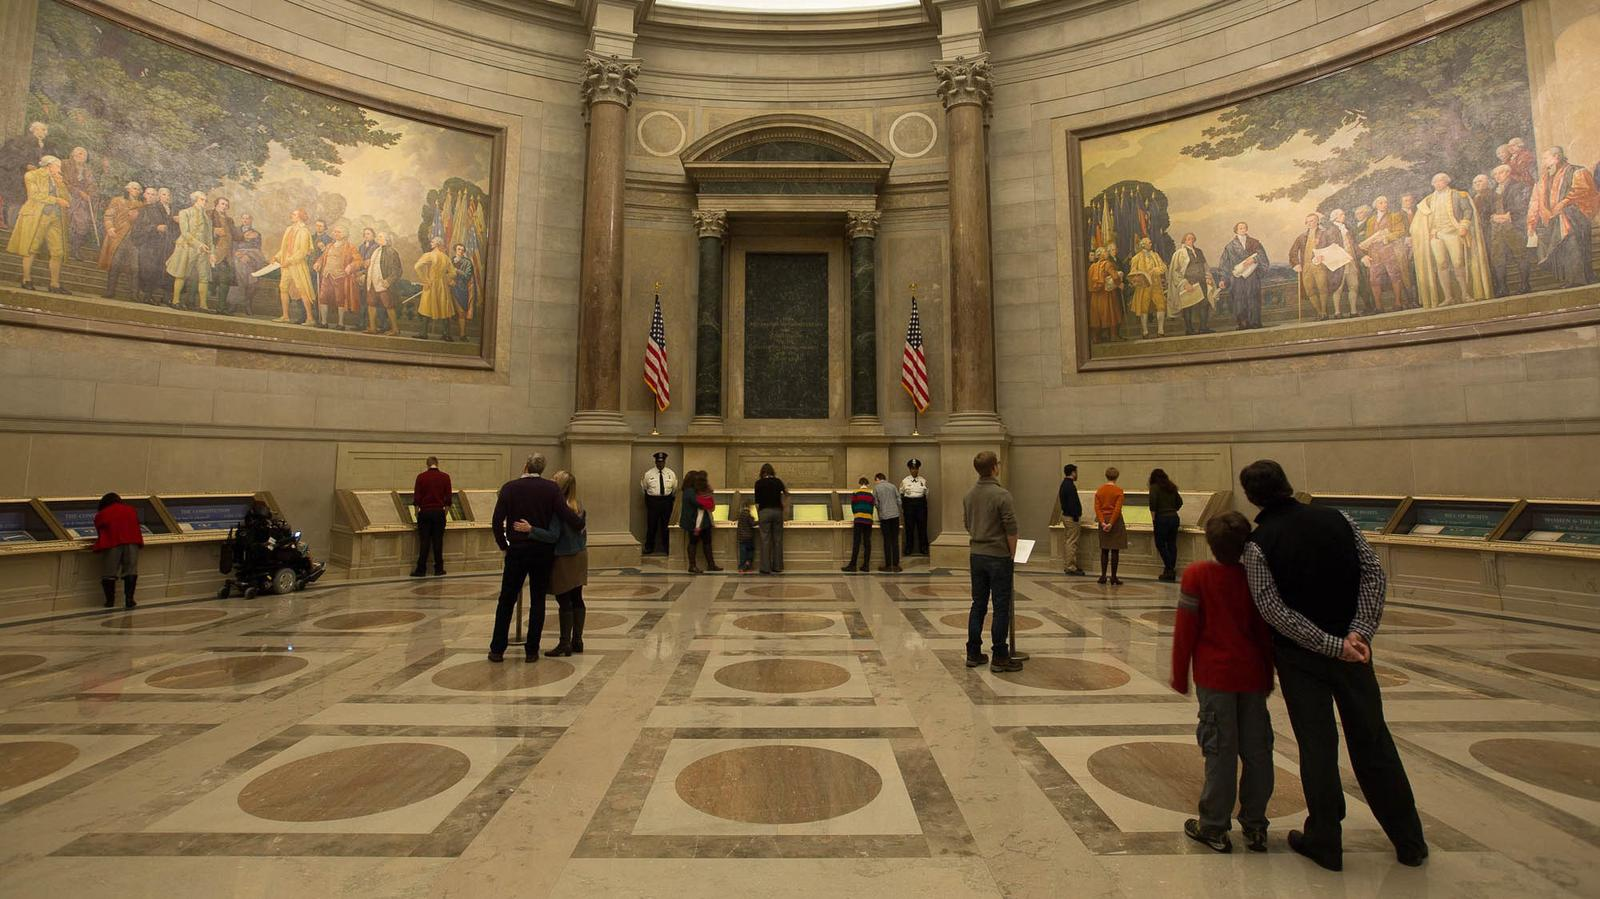 Rotunda for the Charters of Freedom: Declaration of Independence, U.S. Constitution, and Bill of Rights